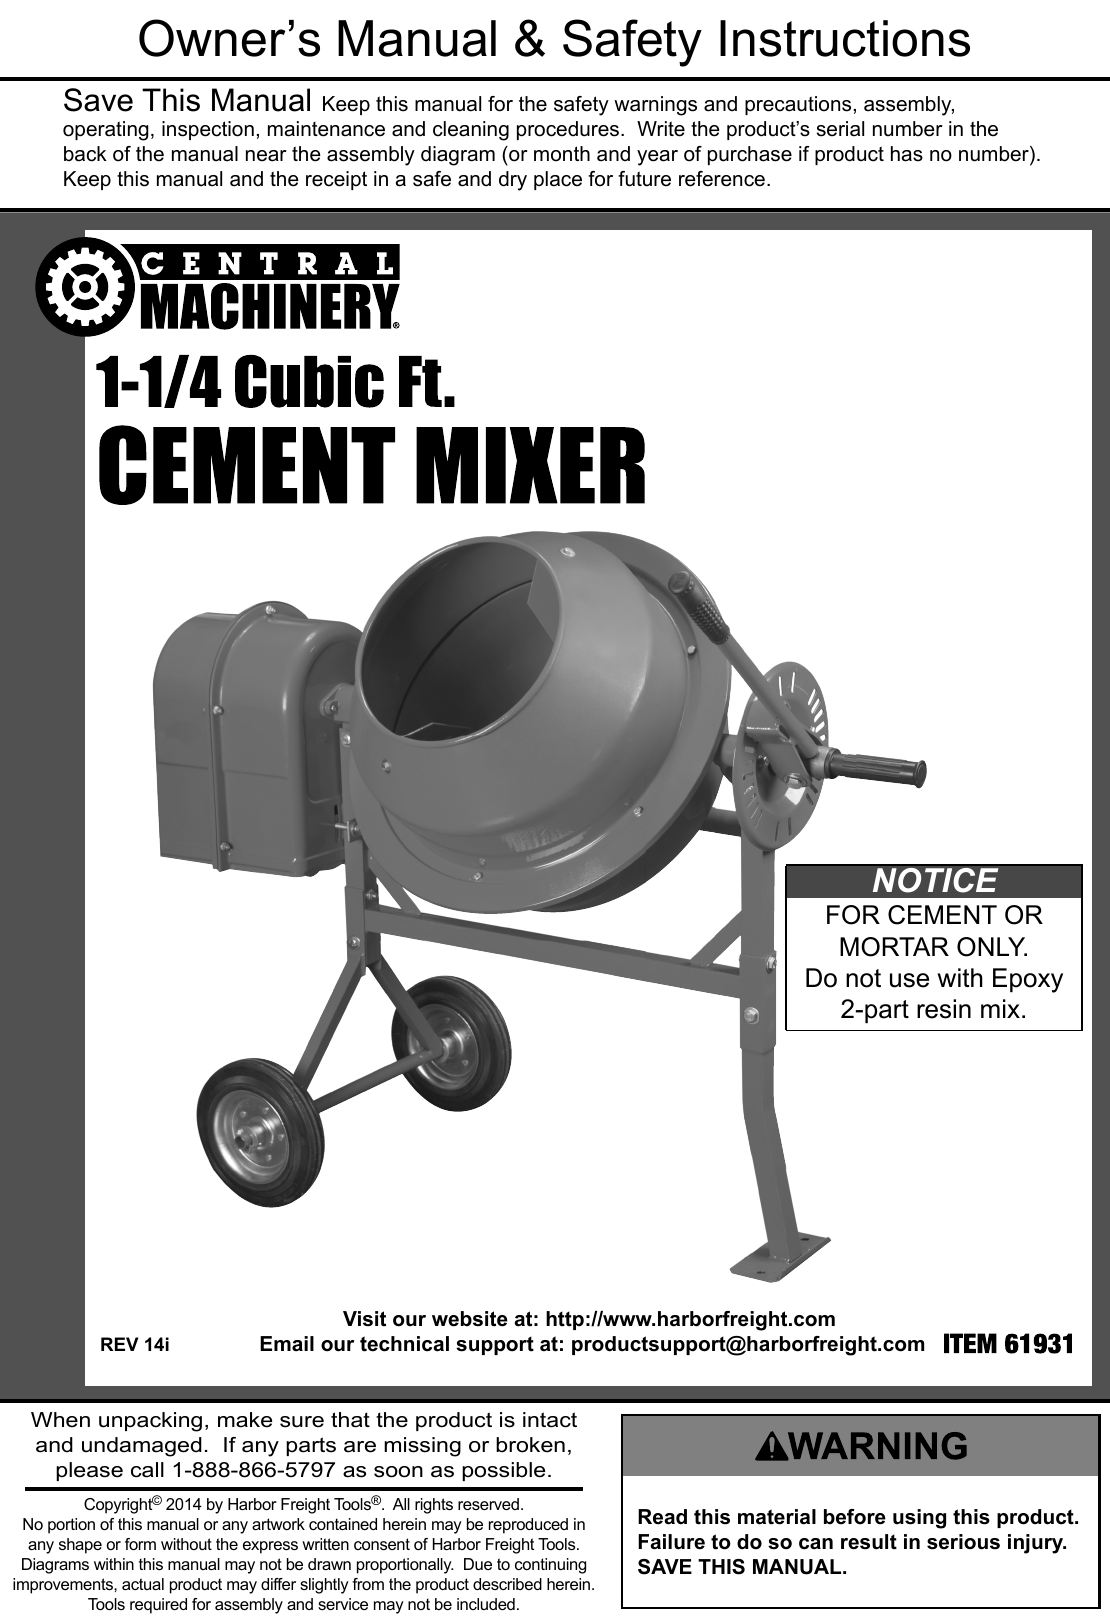 Manual For The 61931 1 1/4 Cubic Ft  Cement Mixer